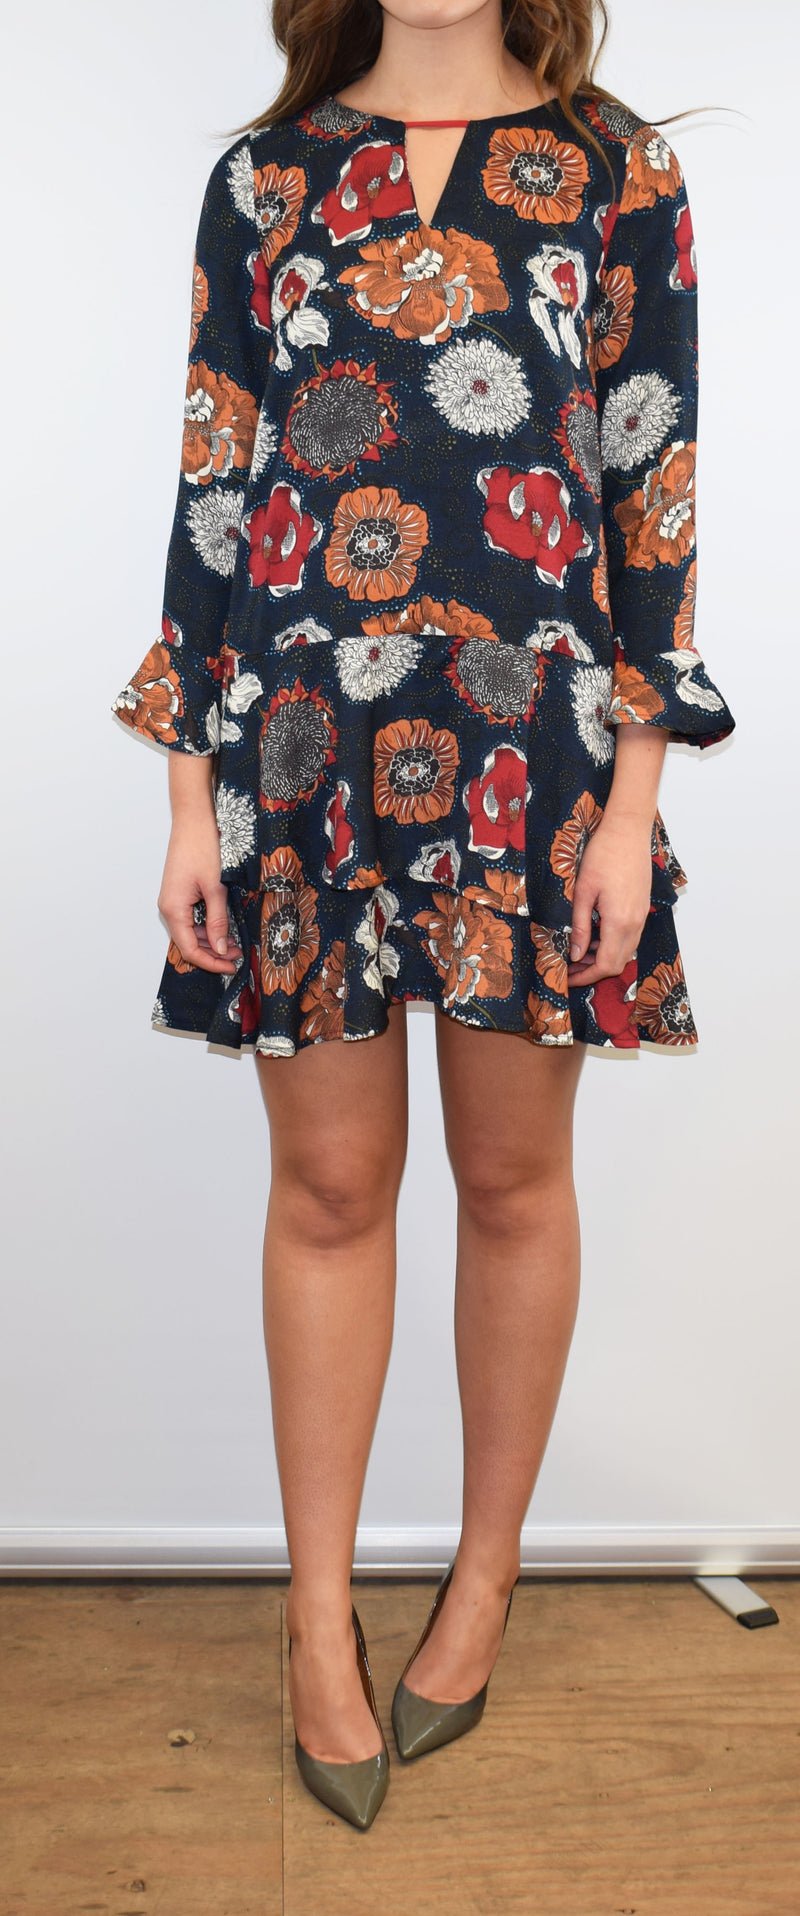 Goa Goa Barby Navy Floral Dress